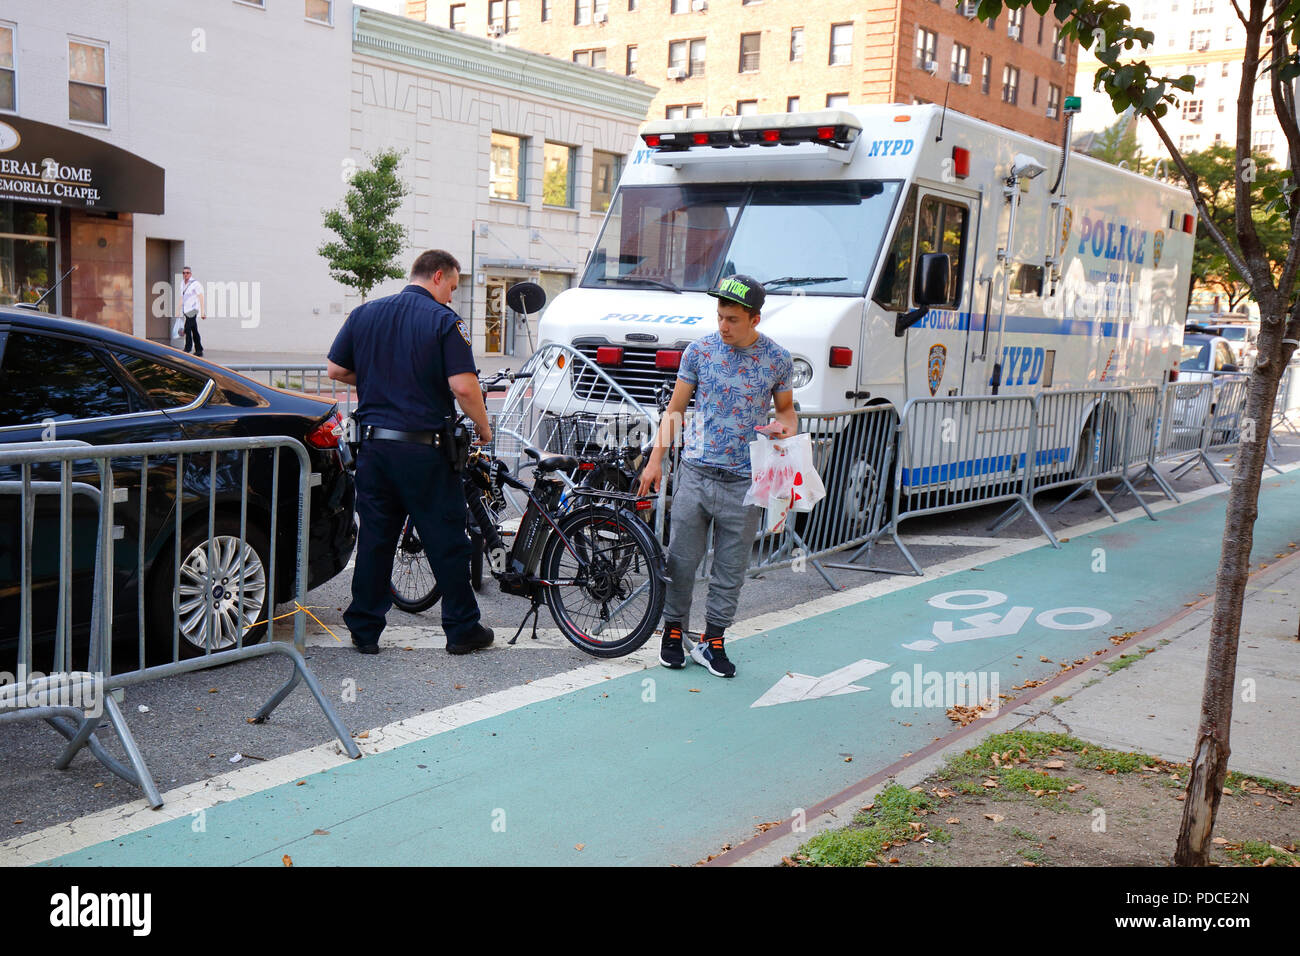 New York, NY, USA. 8th August, 2018.  Police examine a confiscated Class 2--throttle assist--electric bicycle, while a cyclist lingers briefly for a final parting touch. Electric bikes are currently illegal in New York State. NYC Mayor De Blasio has directed the Department of Transportation to begin allowing Class 1 pedal assisted electric bikes, while continuing the crackdown on all e bikes.  Most electric bike users are food delivery personnel. Stock Photo